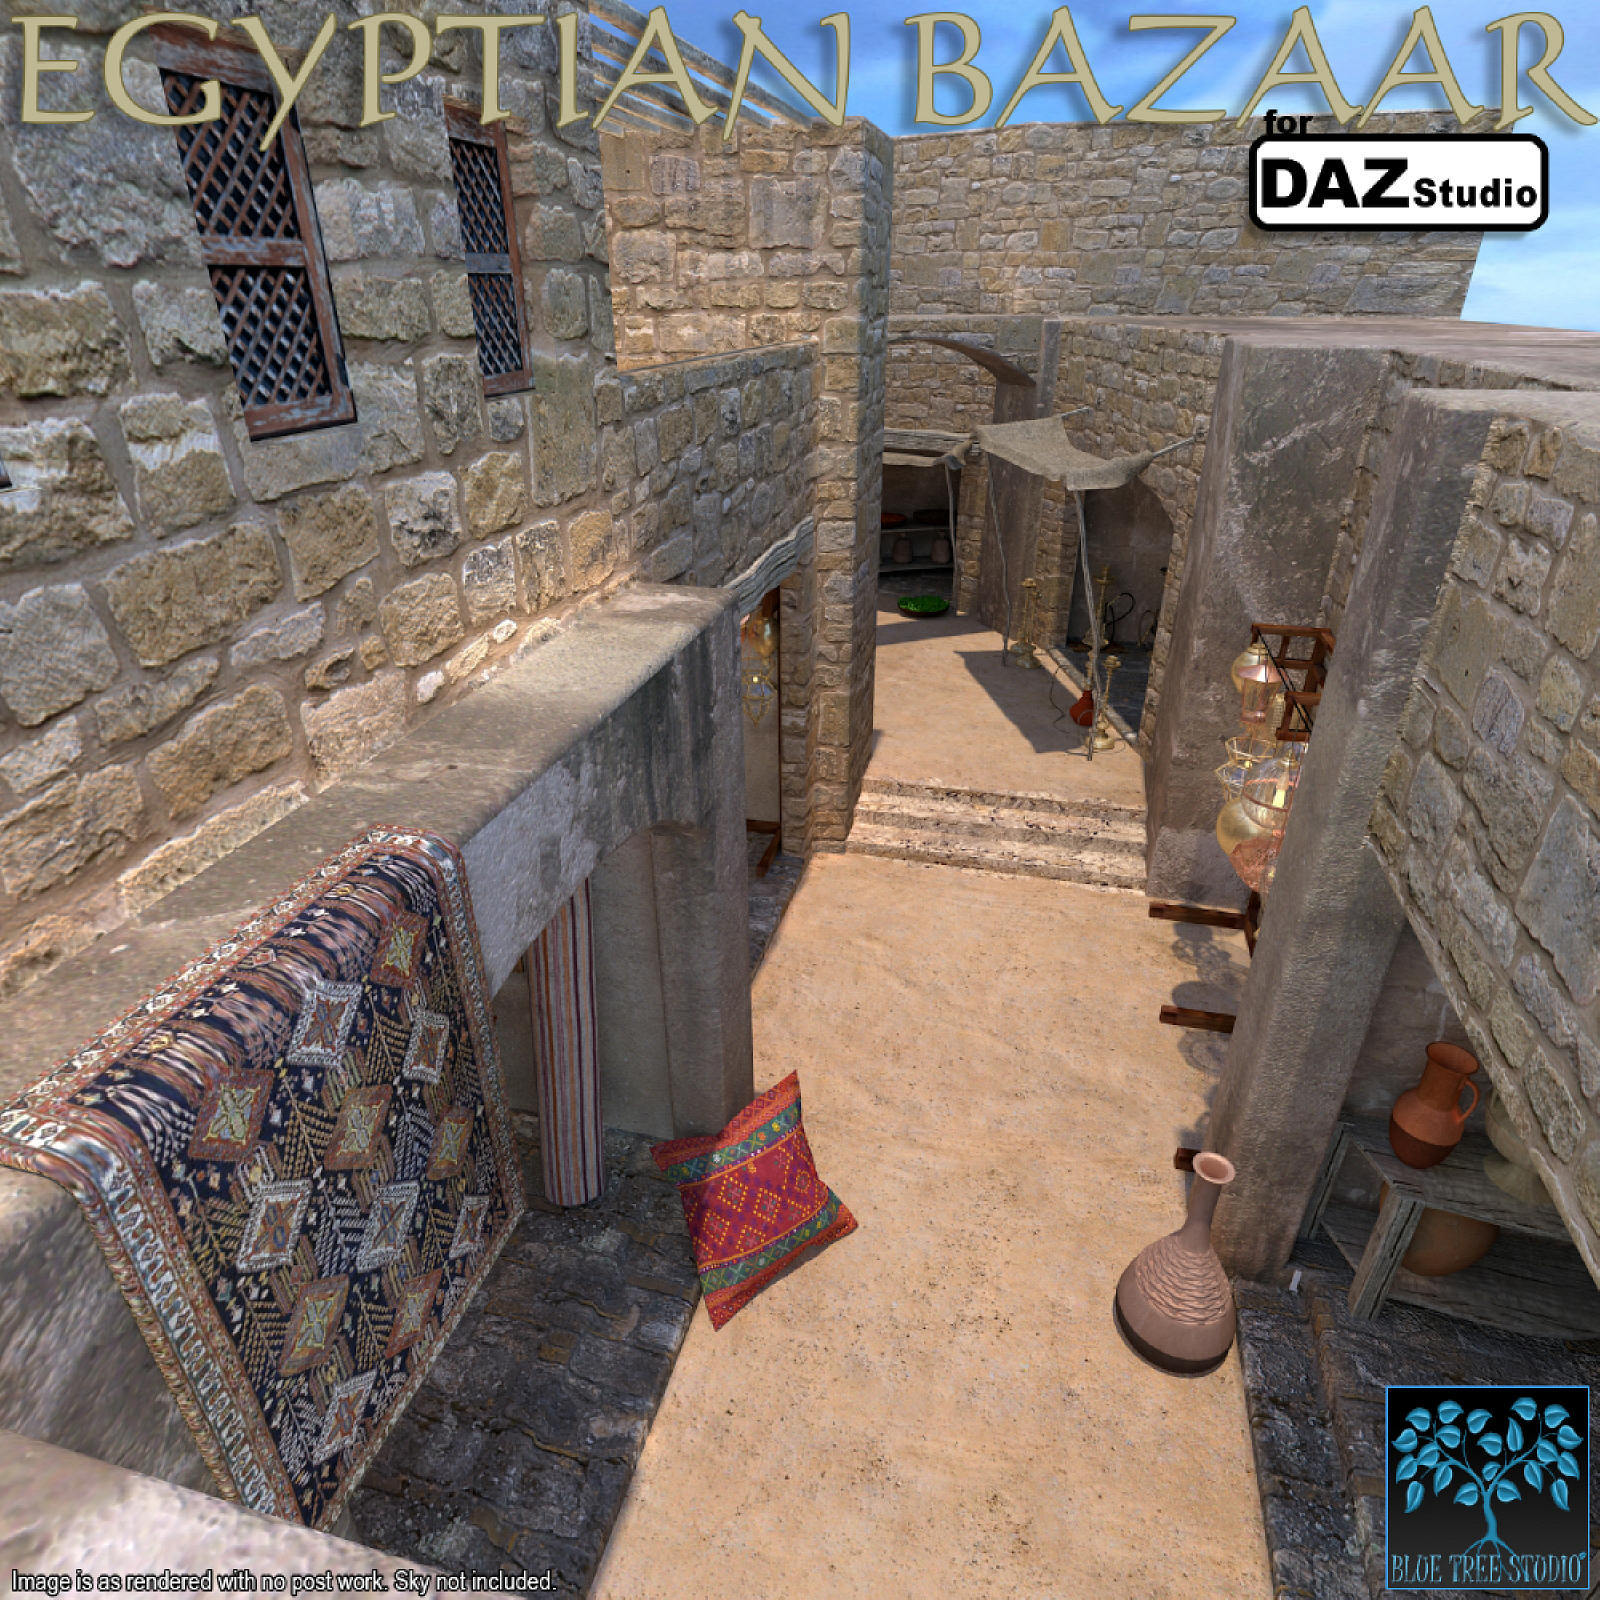 Egyptian Bazaar for Daz